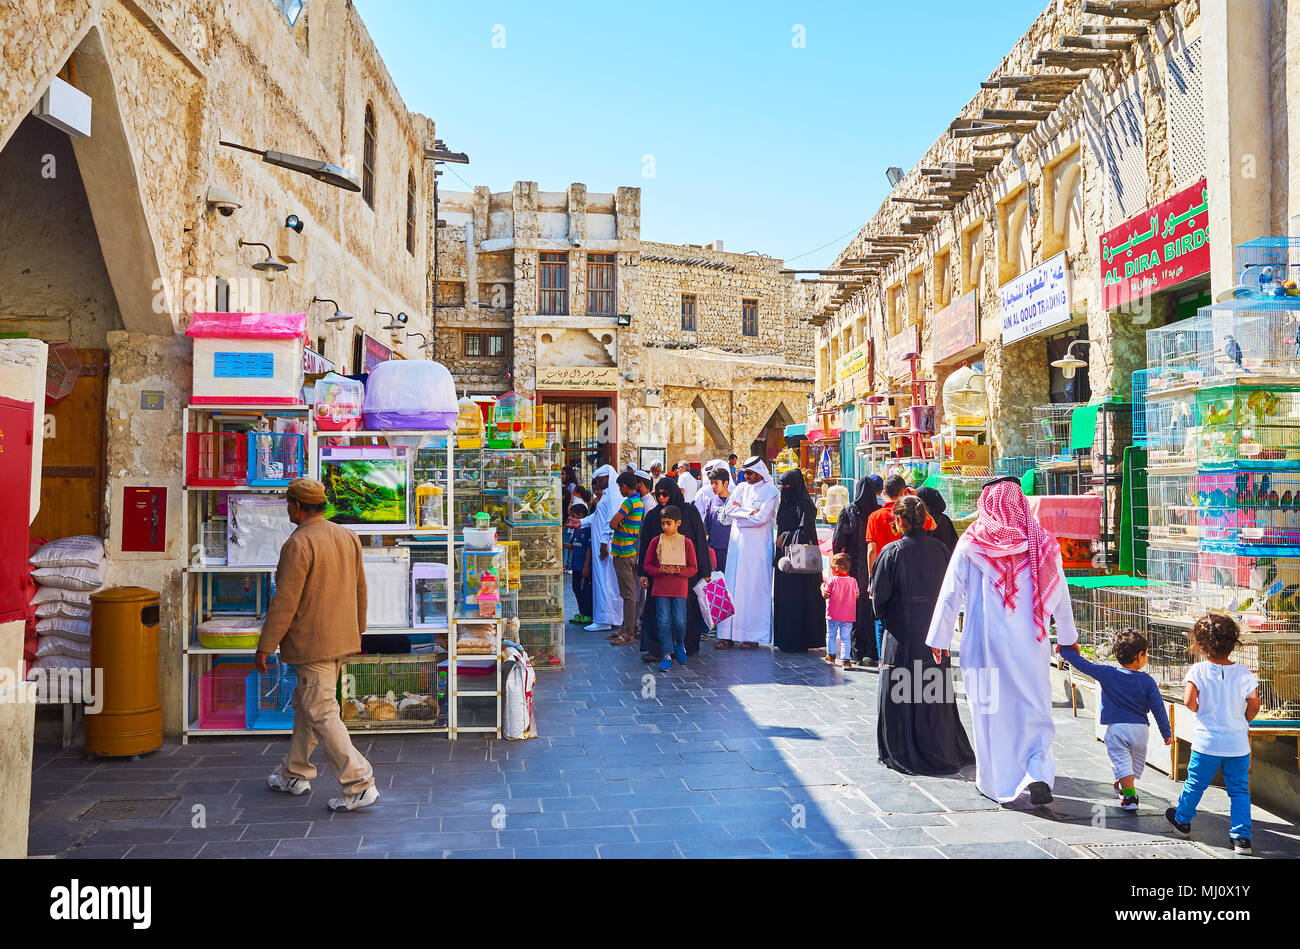 DOHA, QATAR - FEBRUARY 13, 2018: The Pet Market, of Souq Waqif with crowd of locals, looking for interesting birds or pets for children, on February 1 Stock Photo